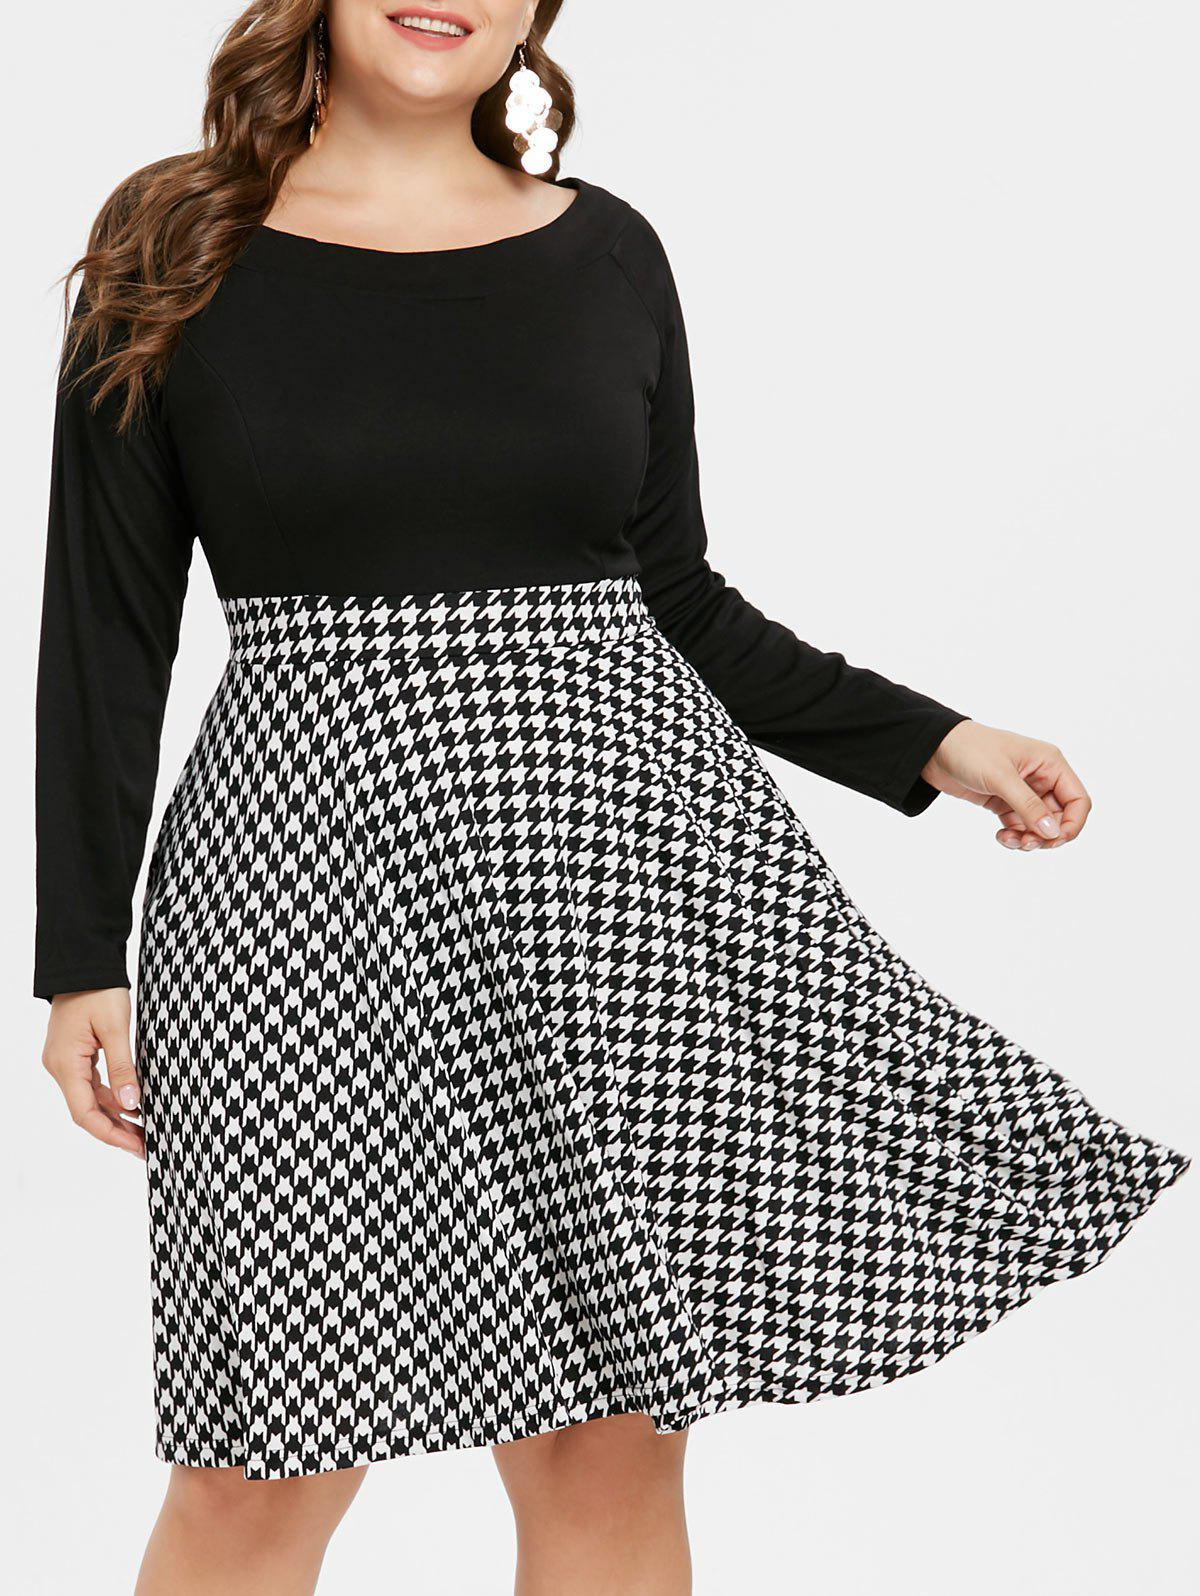 1d38ed93d42 2019 Houndstooth Pattern Plus Size Flare Dress